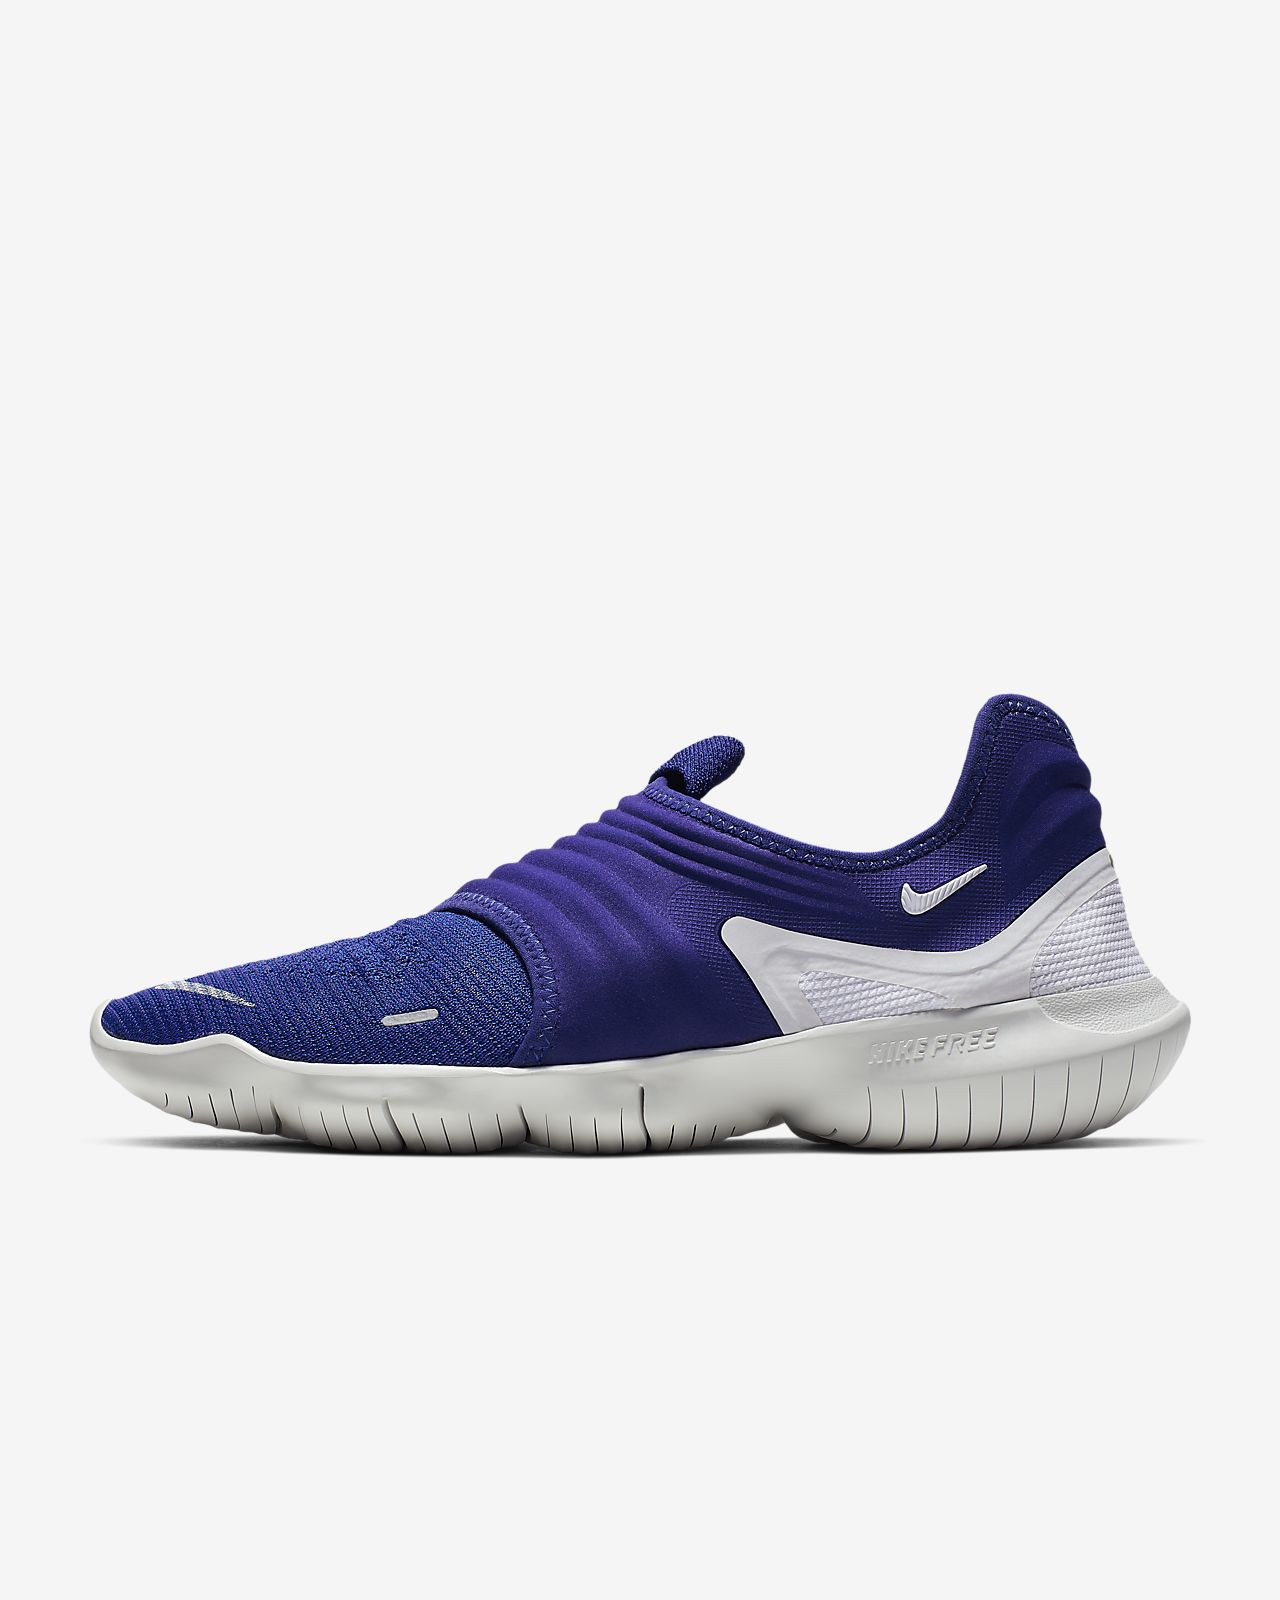 uk availability 4badf ca3aa ... Chaussure de running Nike Free RN Flyknit 3.0 pour Homme